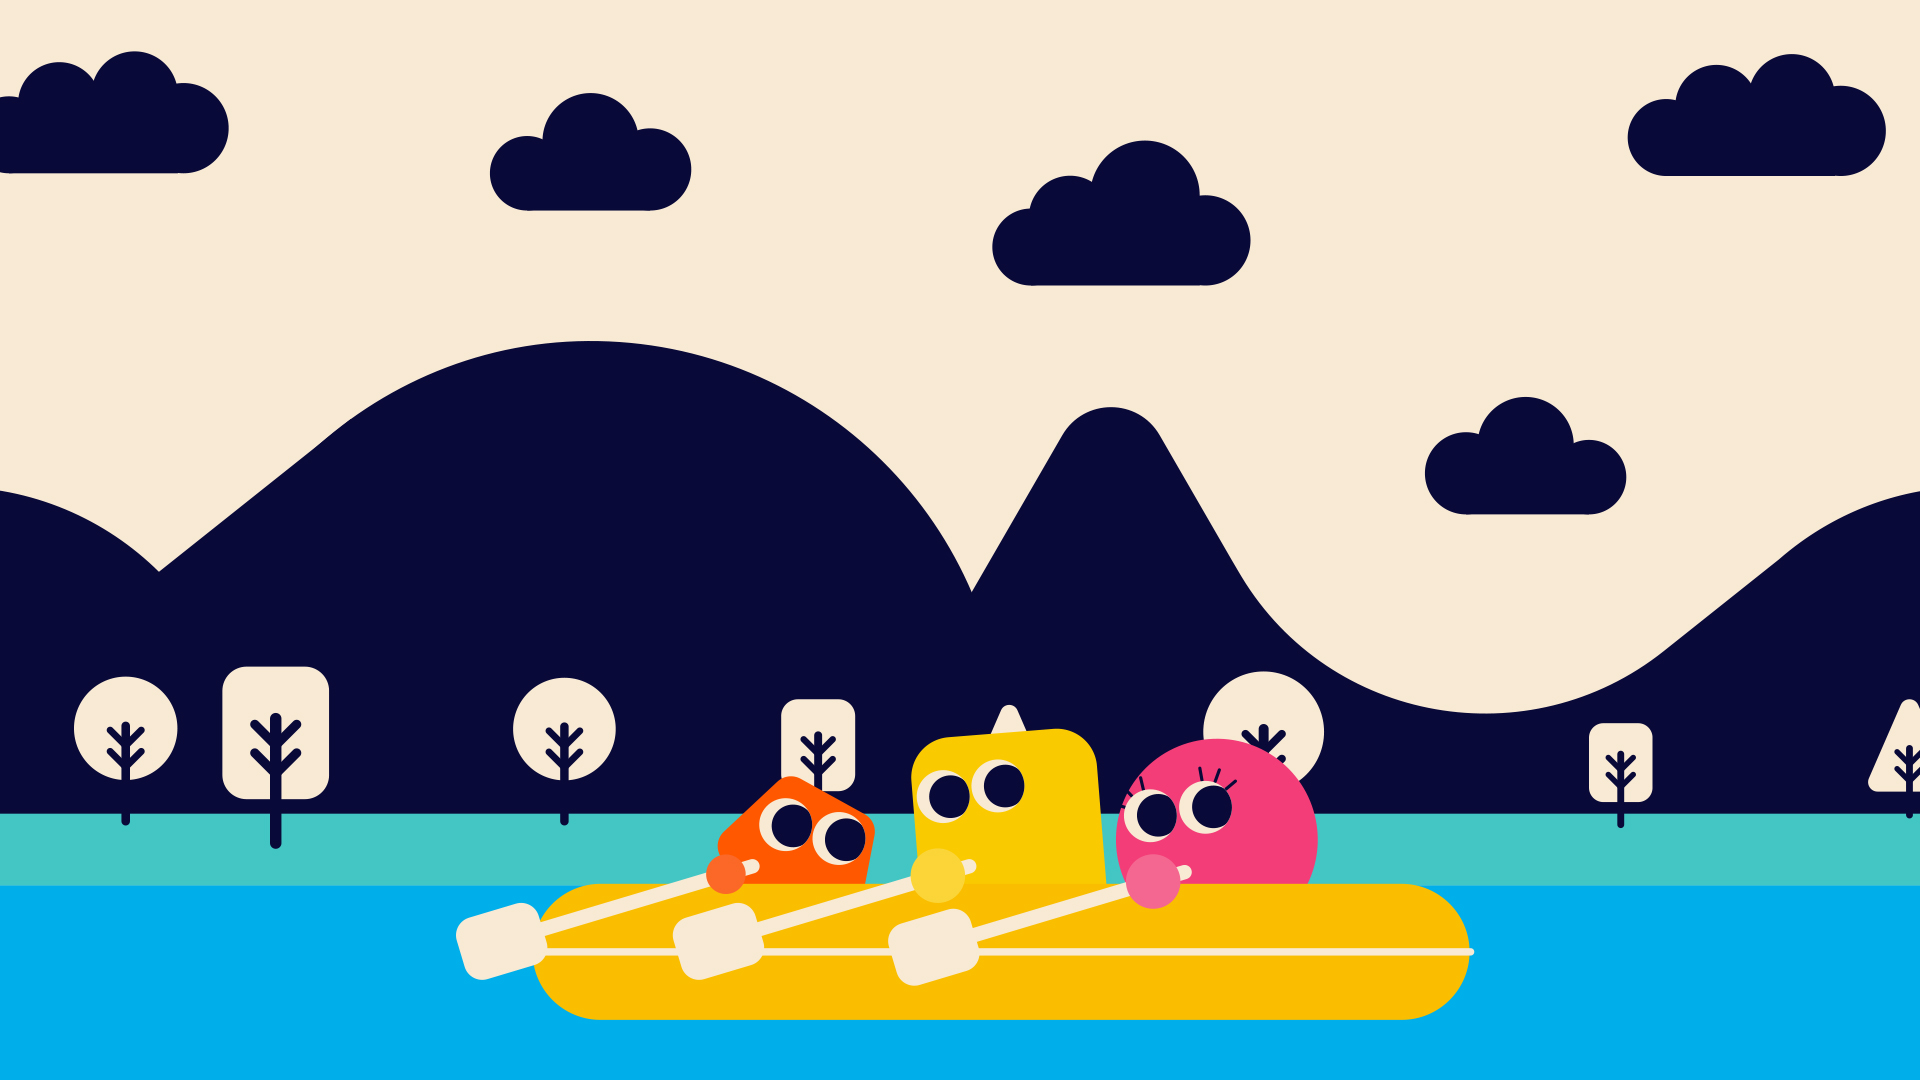 SCOUT--Skills-for-life---Young-Illustration-&-Animation-Studio-Manchester-2D,-characters,-shapes,-rowing,-kayak--countryside,-outdoors,-waves,-hills,-teamwork.jpg